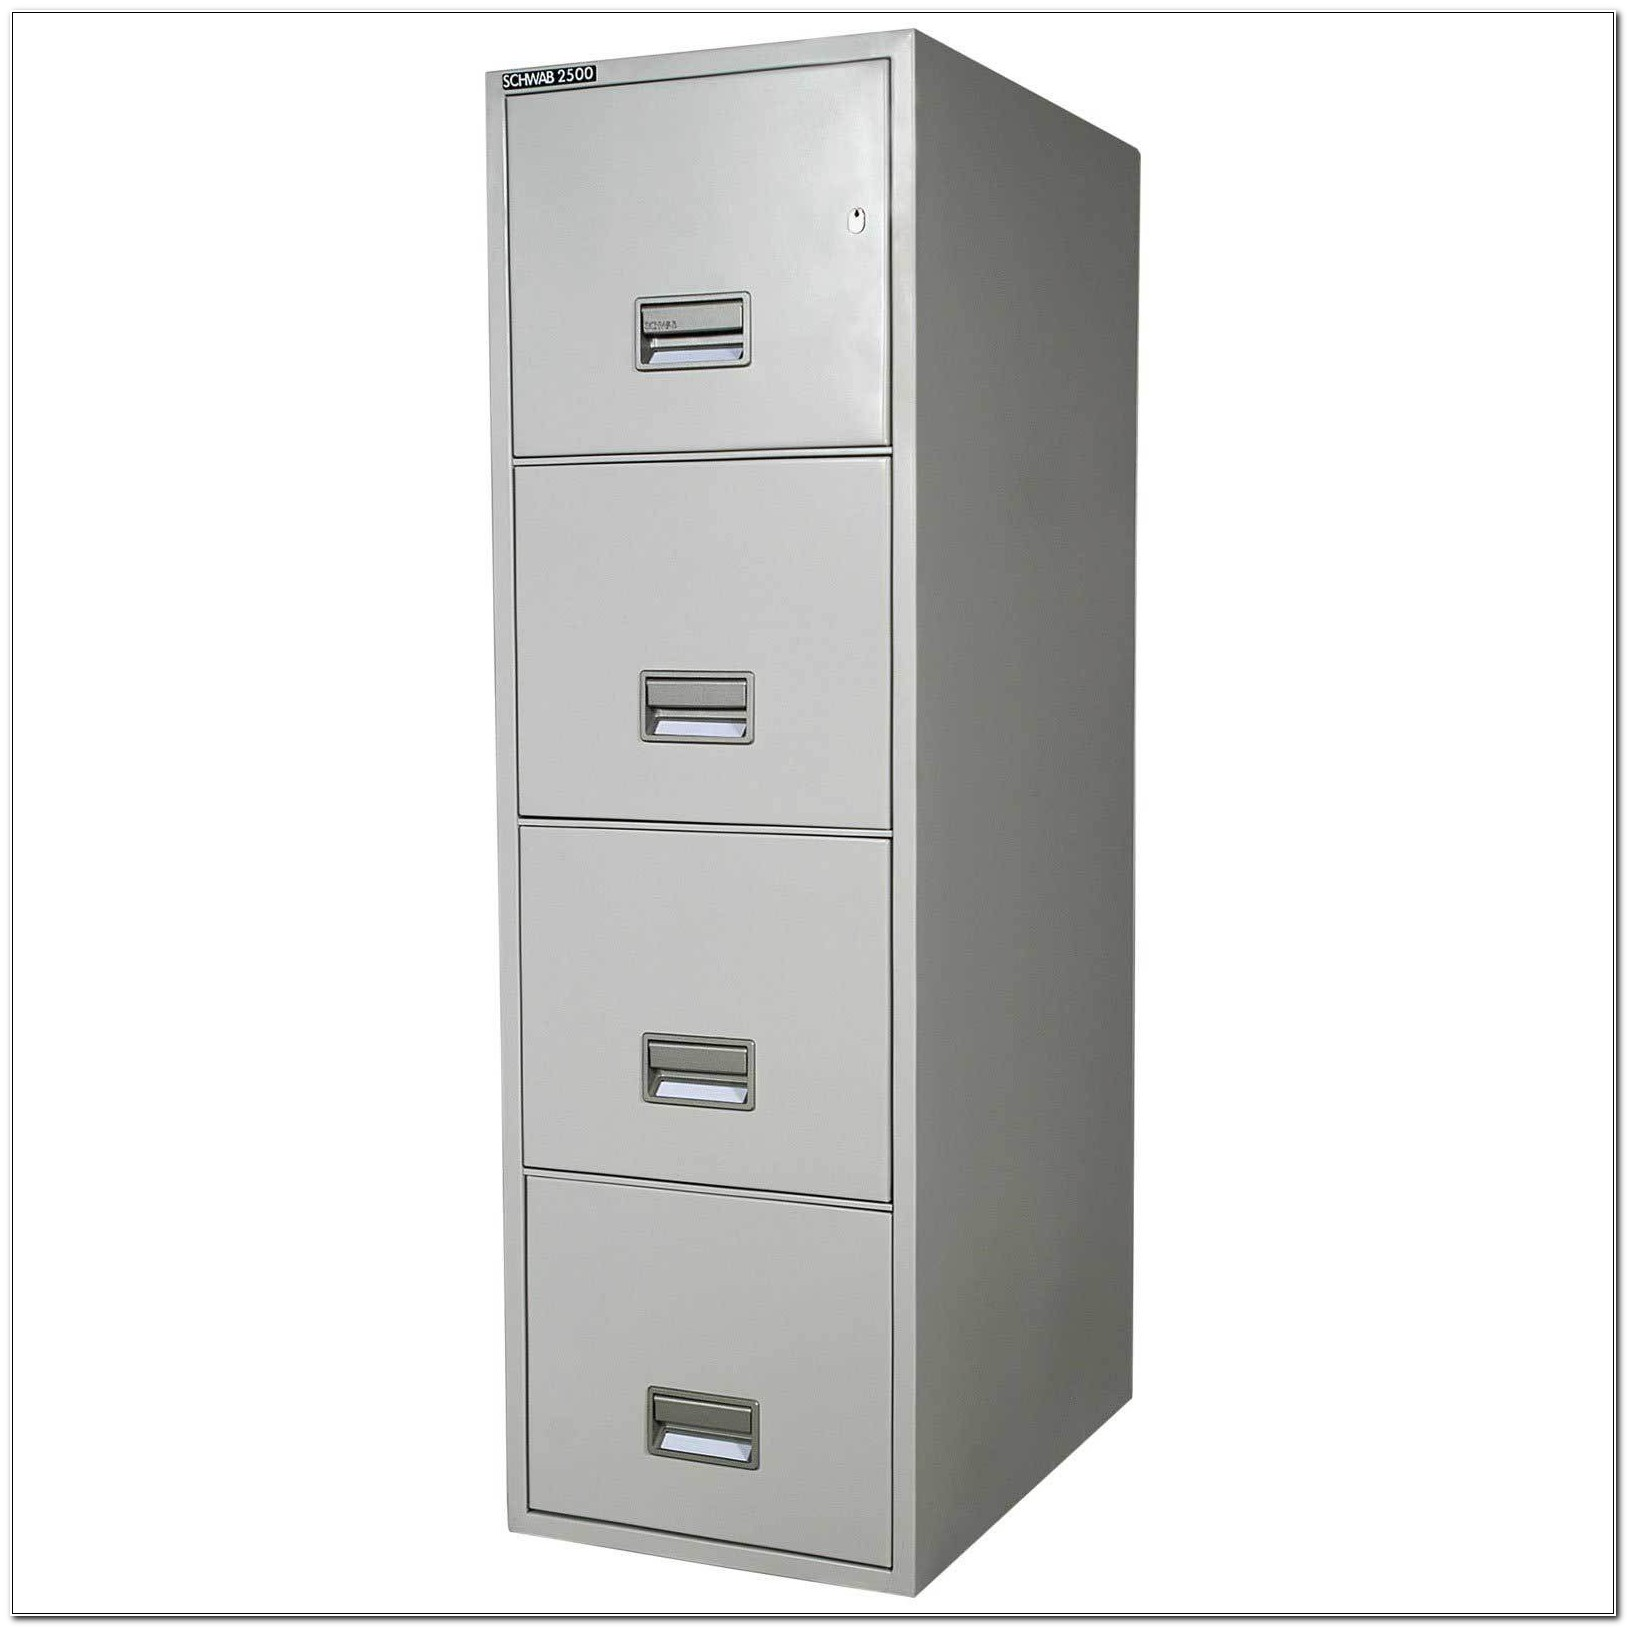 Officemax Fireproof File Cabinet